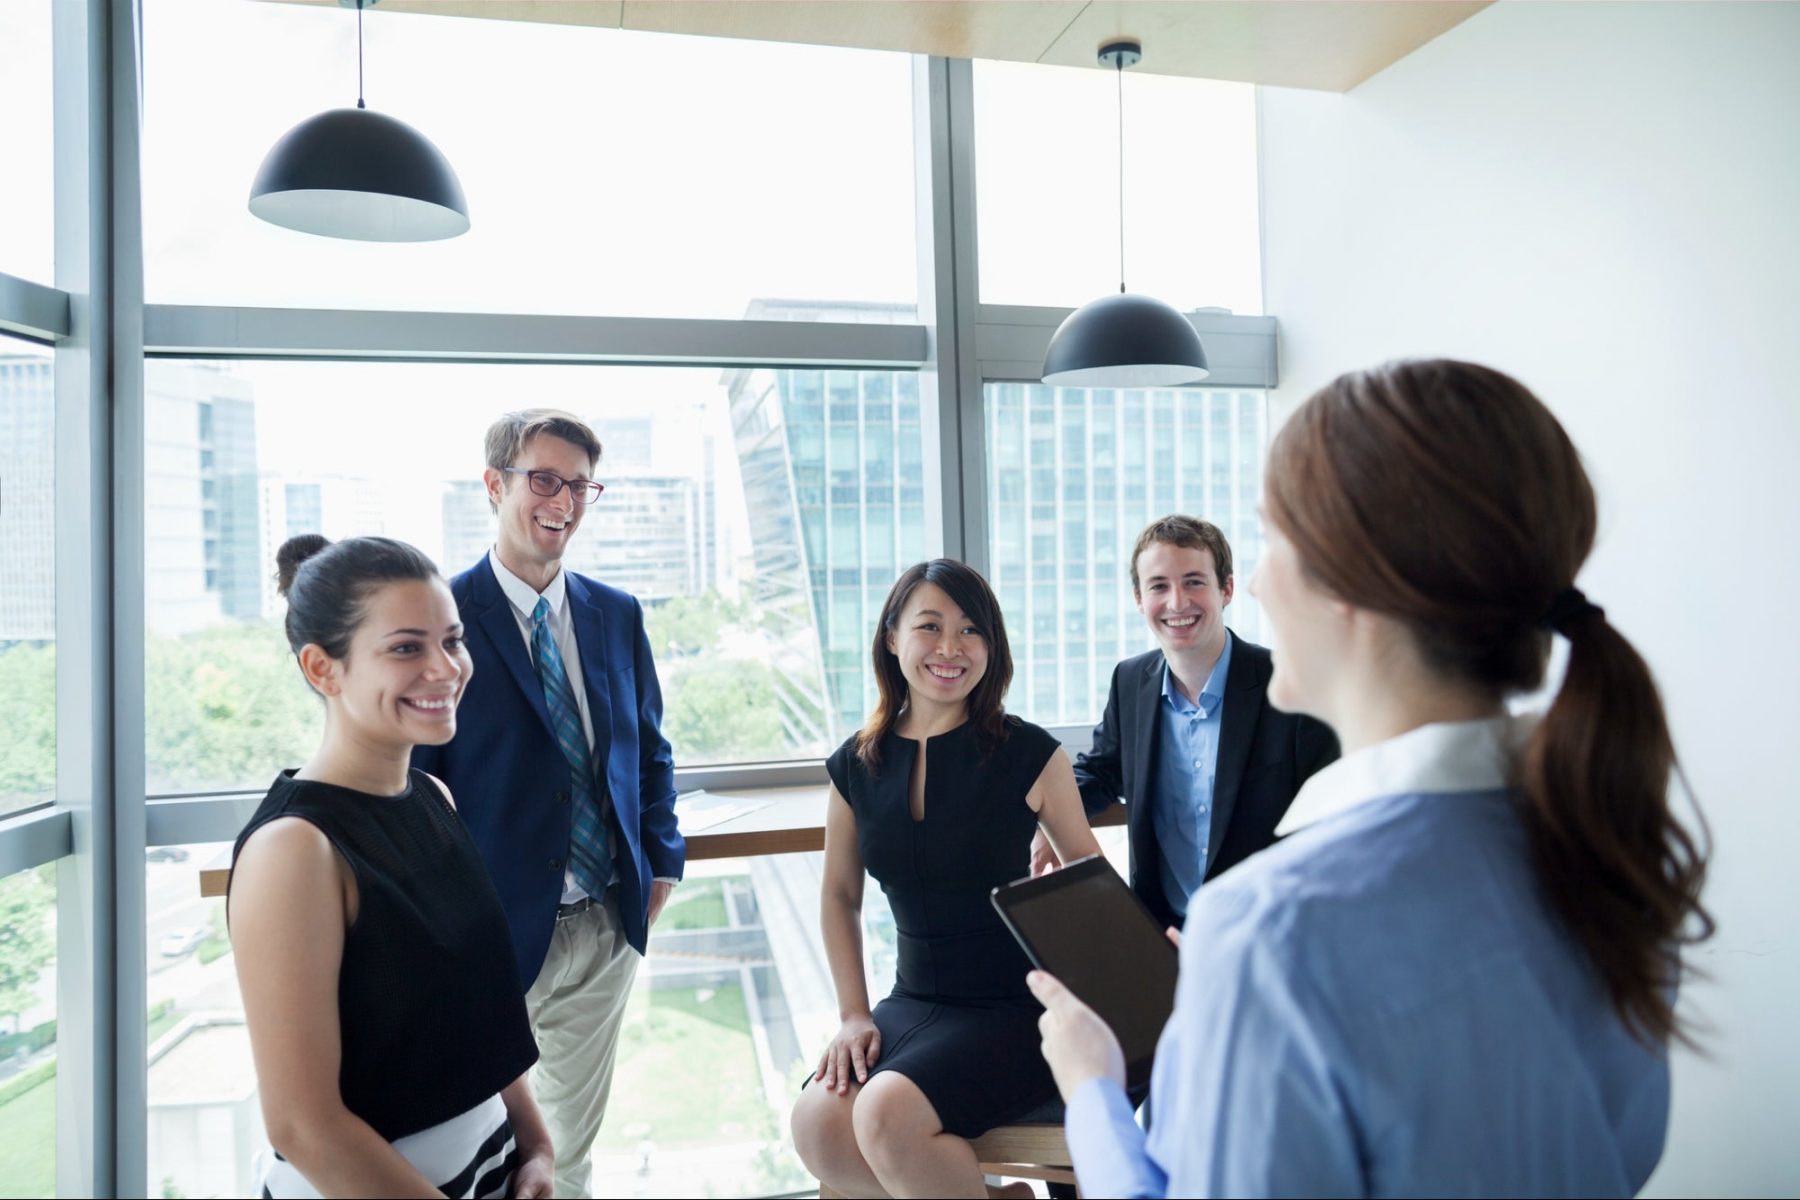 10-successful-entrepreneurs-on-why-delegating-effectively-is-difficult-but-necessary